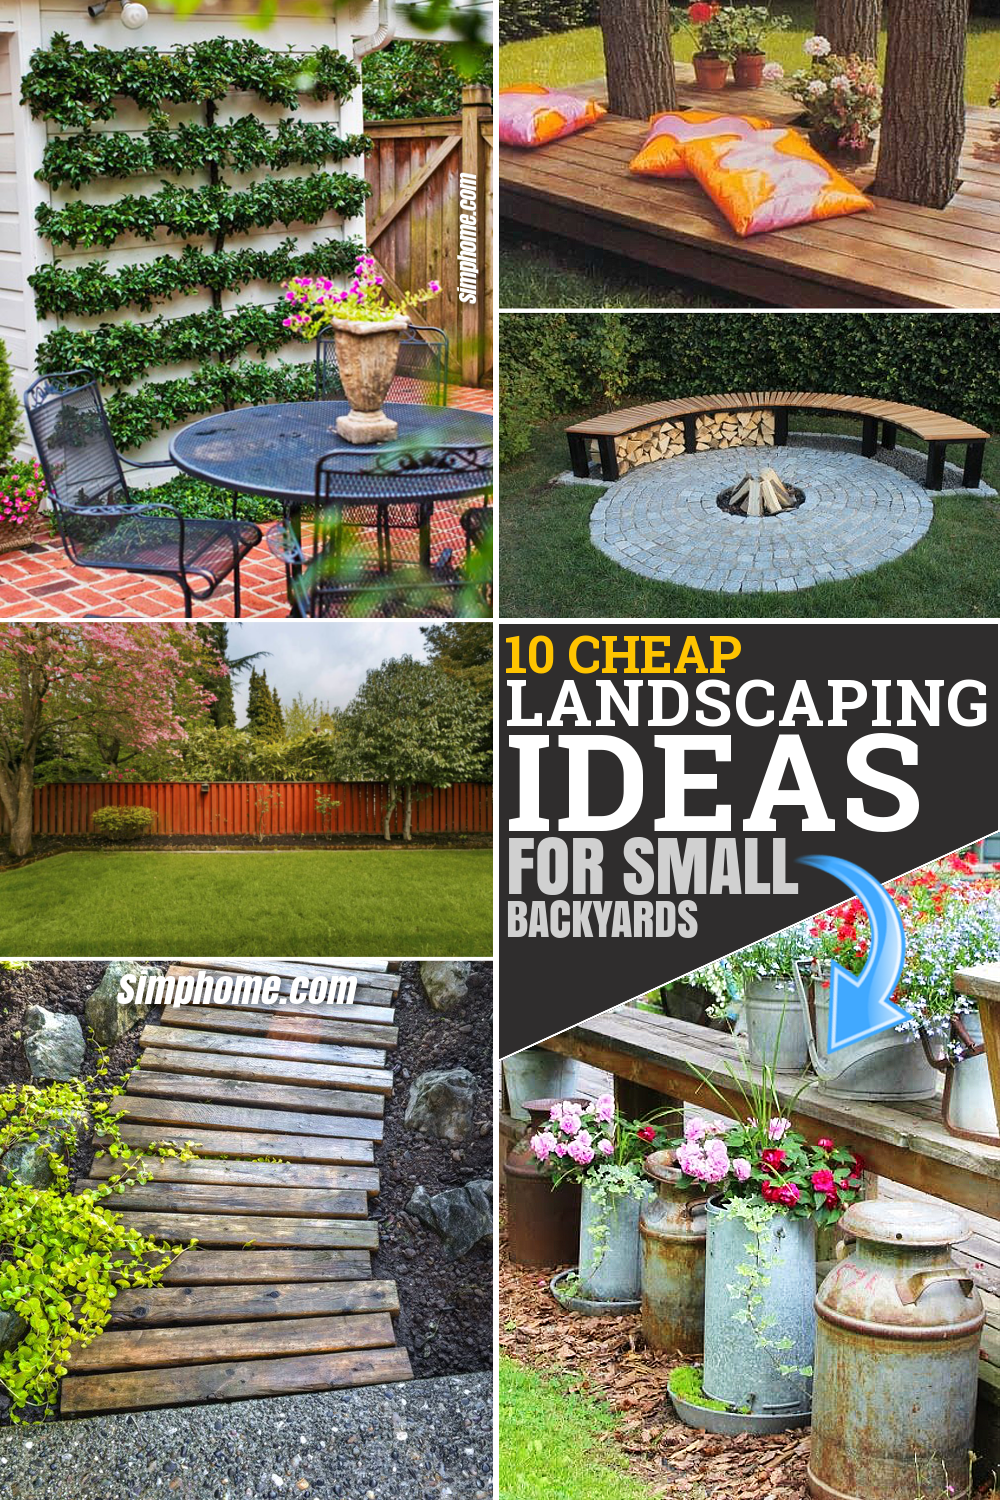 10 Cheap Landscaping Ideas For Small Backyards Simphome